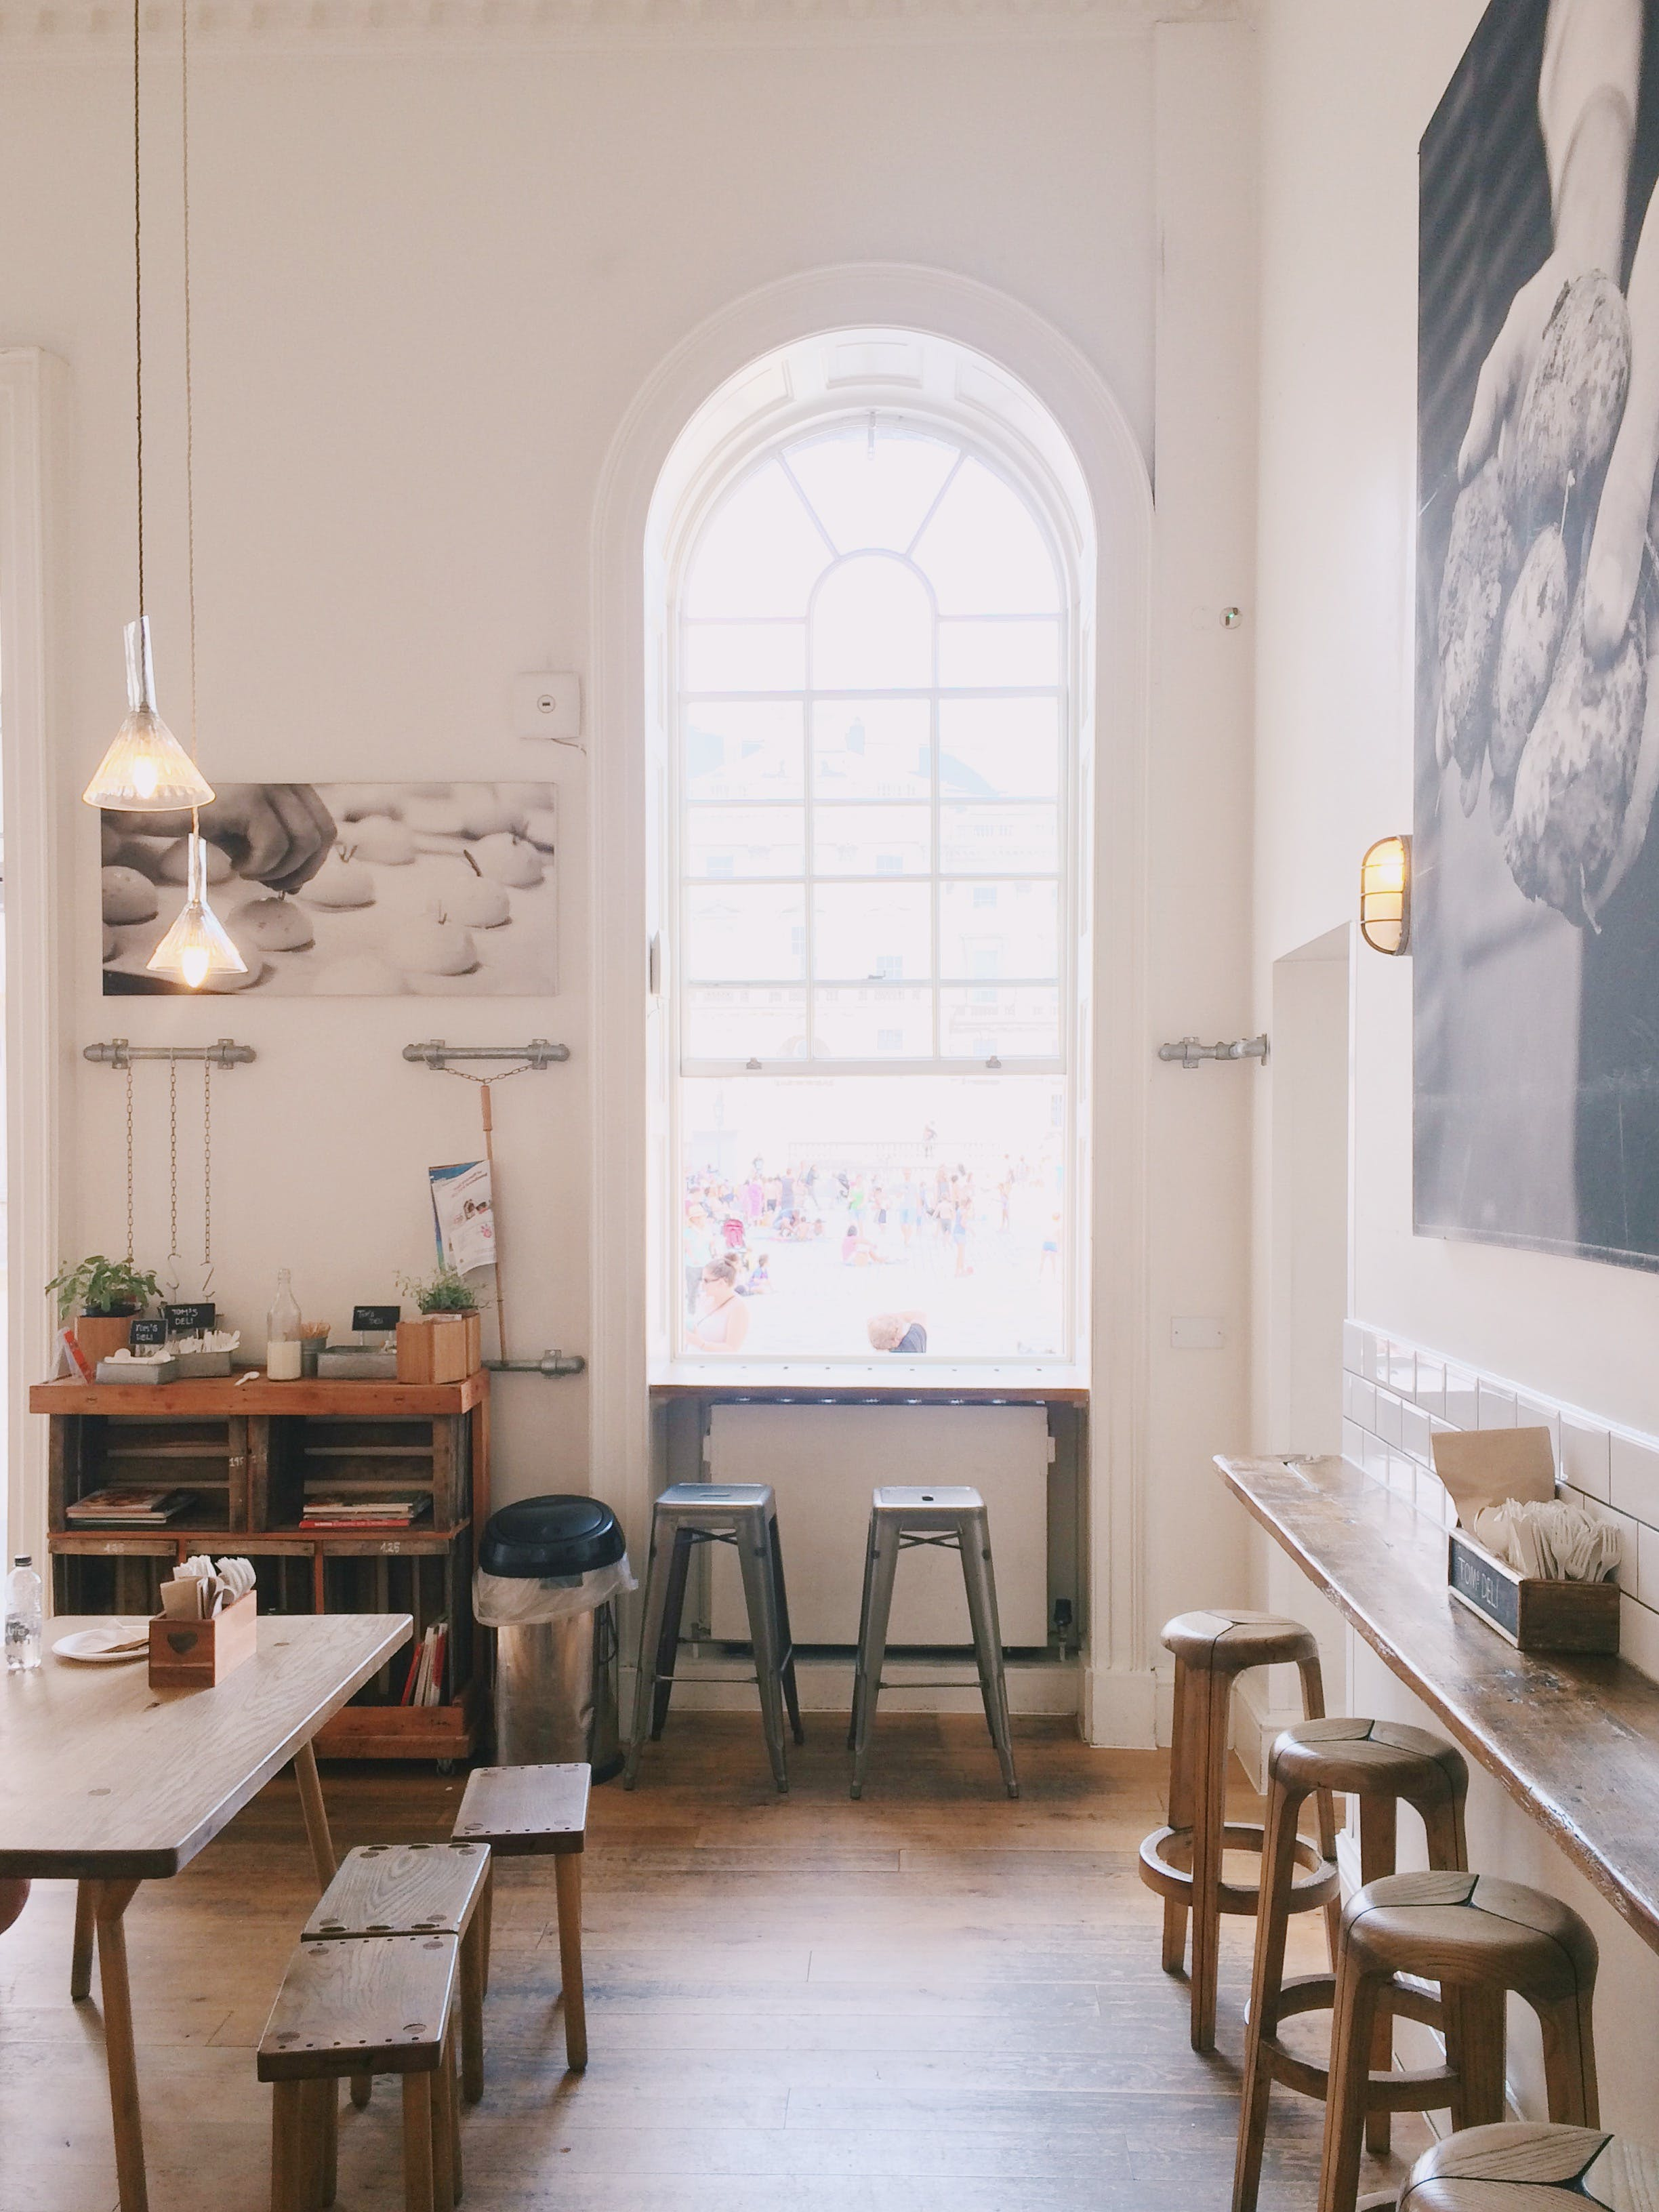 Two Grey Wooden Stools Near Window With Arc Frame